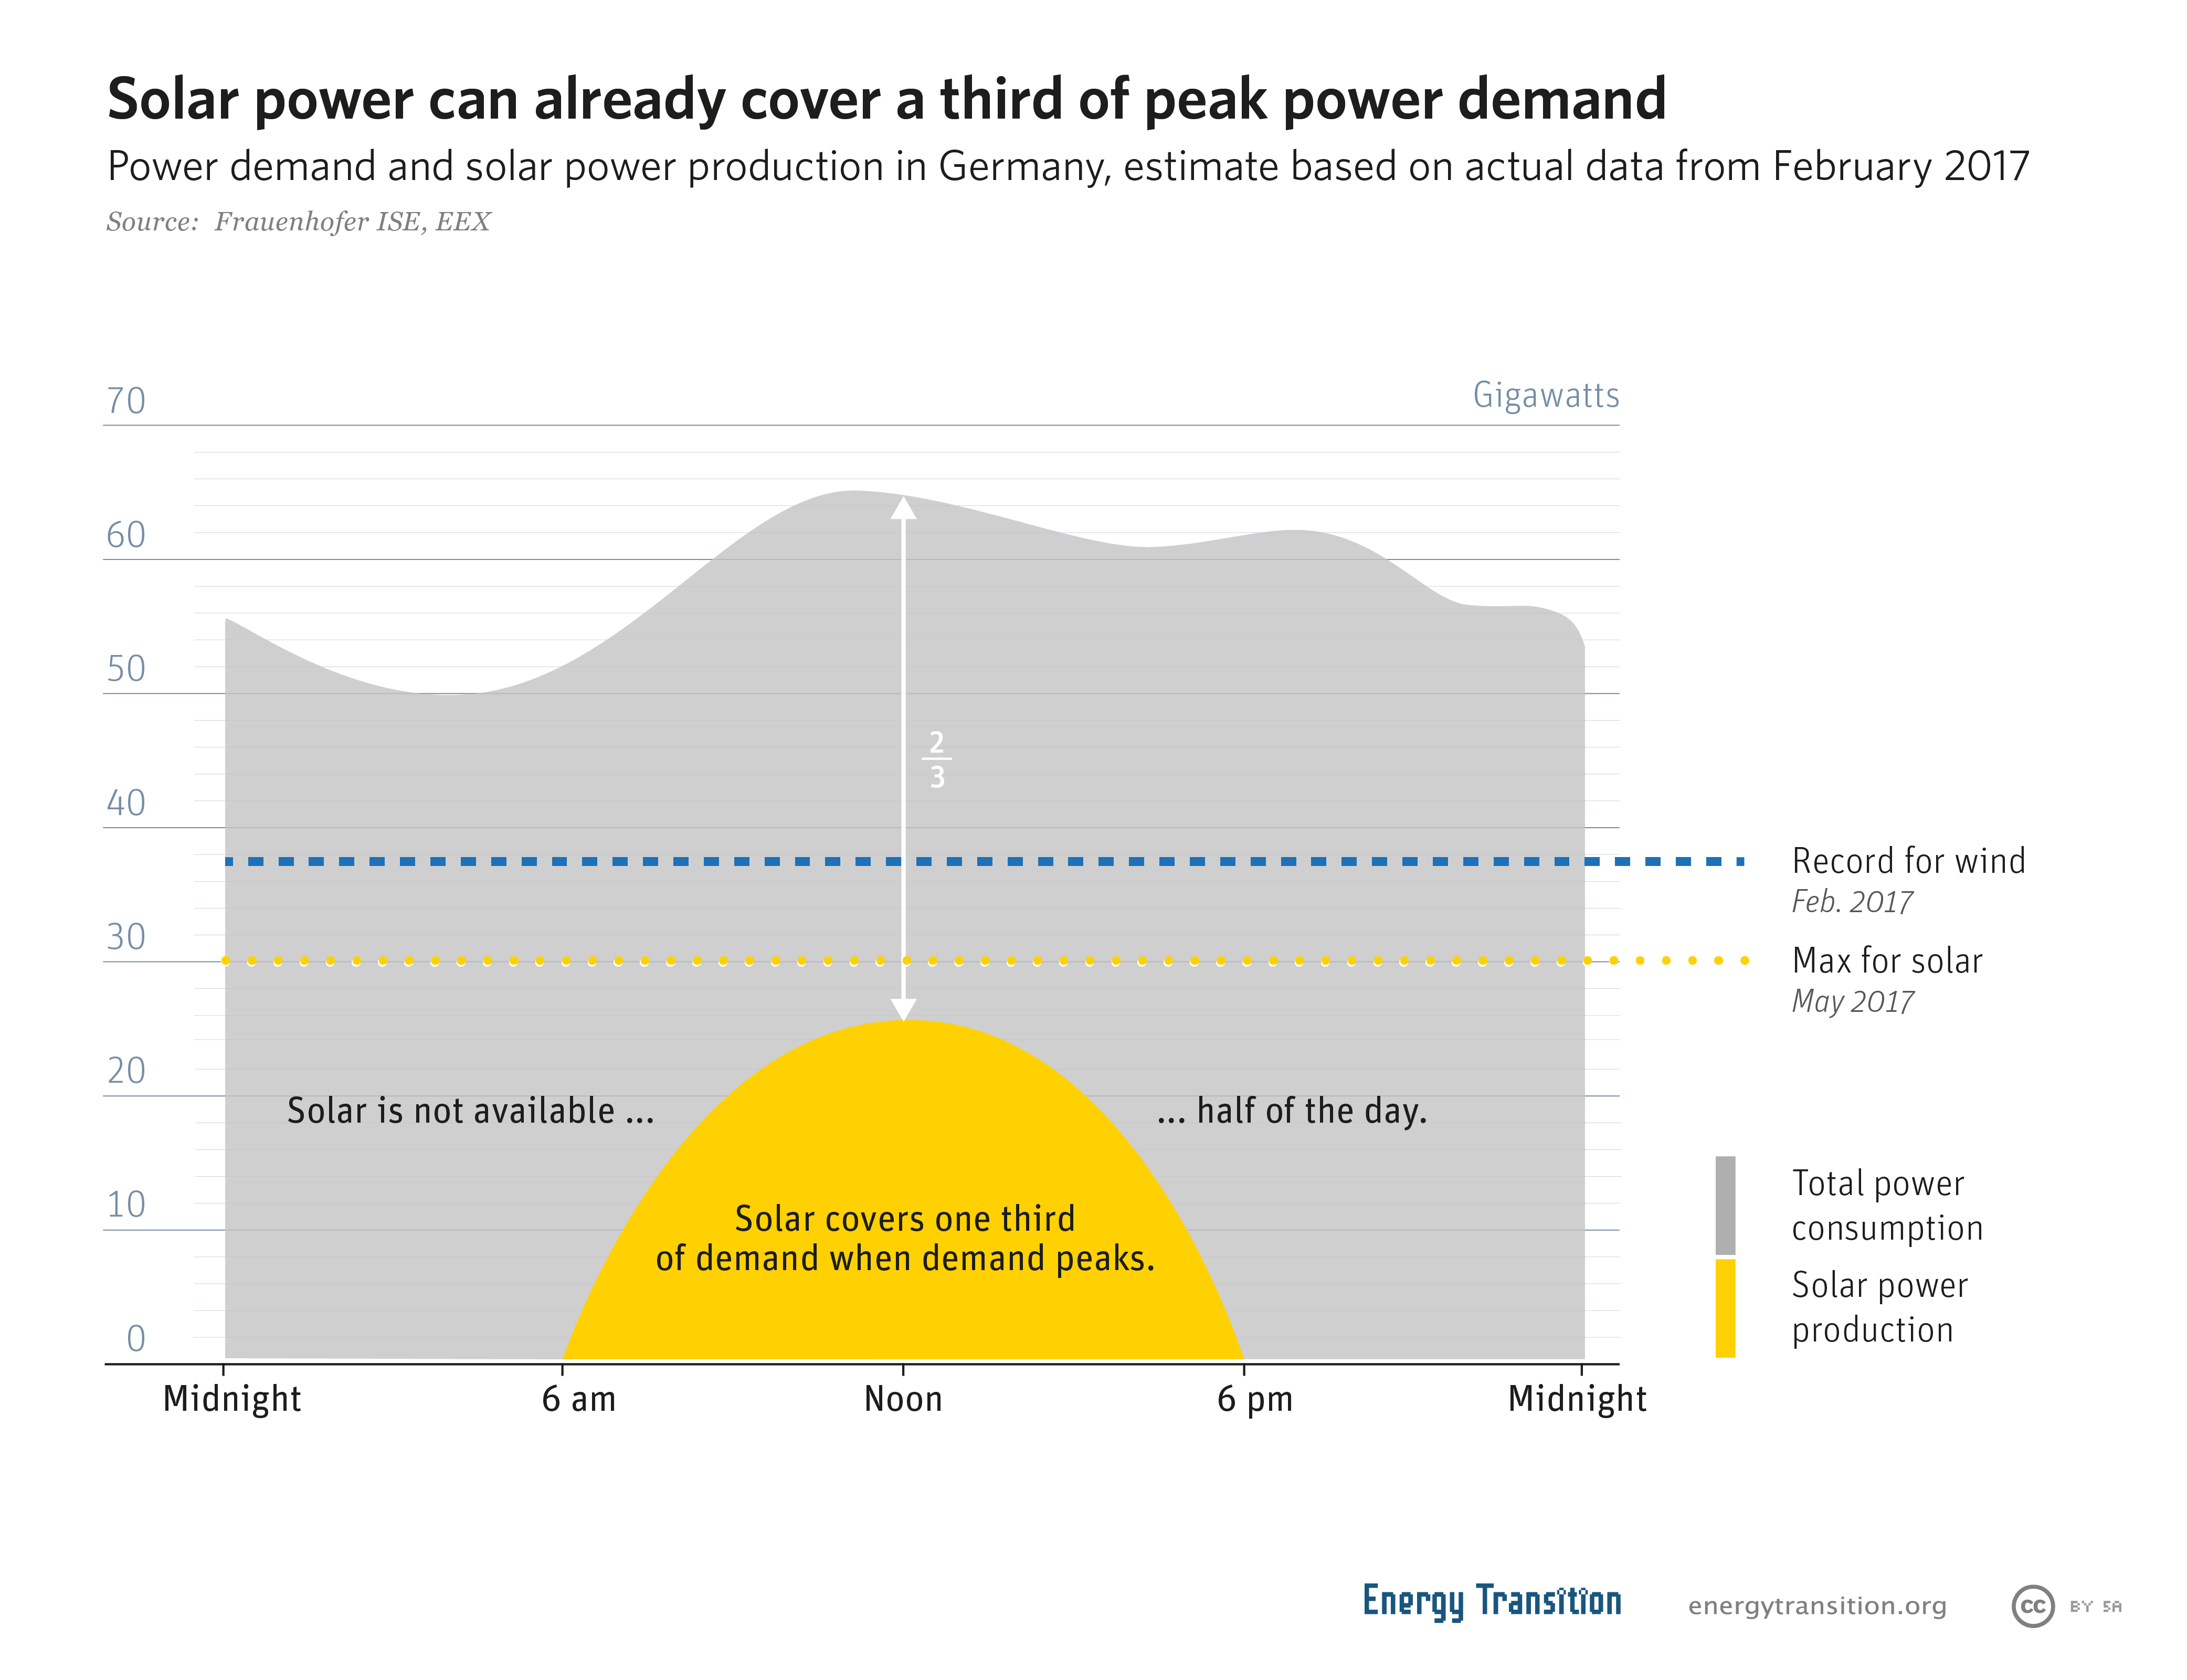 Energiewende Blog Heinrich Bll Foundation Little Wonder Engine Diagrams According To The Freiburg Based Research Institute Fraunhofer Ise Output Profile Of Solar Arrays And Usual Pattern Power Demand Match So Well